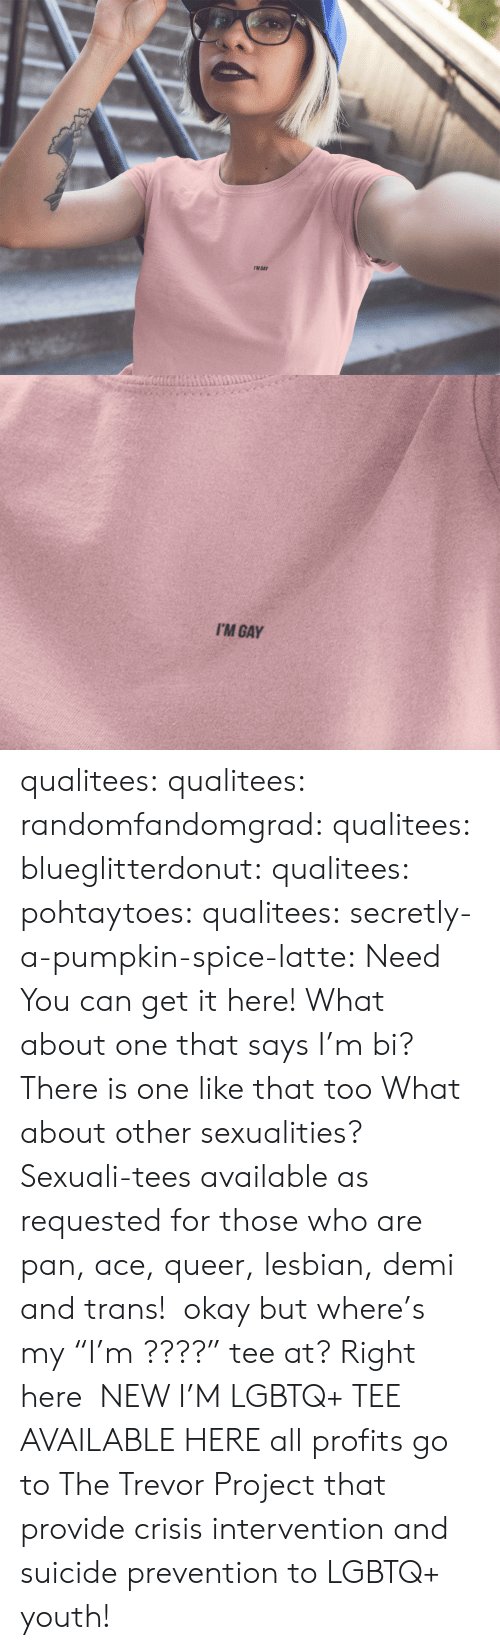 """Sexualities: I'M GAY   I'M GAY qualitees: qualitees:  randomfandomgrad:  qualitees:  blueglitterdonut:  qualitees:   pohtaytoes:  qualitees:   secretly-a-pumpkin-spice-latte: Need You can get it here!   What about one that says I'm bi?  There is one like that too   What about other sexualities?  Sexuali-tees available as requested for those who are pan, ace,queer,lesbian, demi and trans!  okay but where's my""""I'm ????"""" tee at?  Right here  NEW I'M LGBTQ+ TEE AVAILABLE HEREall profits go to The Trevor Project that provide crisis intervention and suicide prevention to LGBTQ+ youth!"""